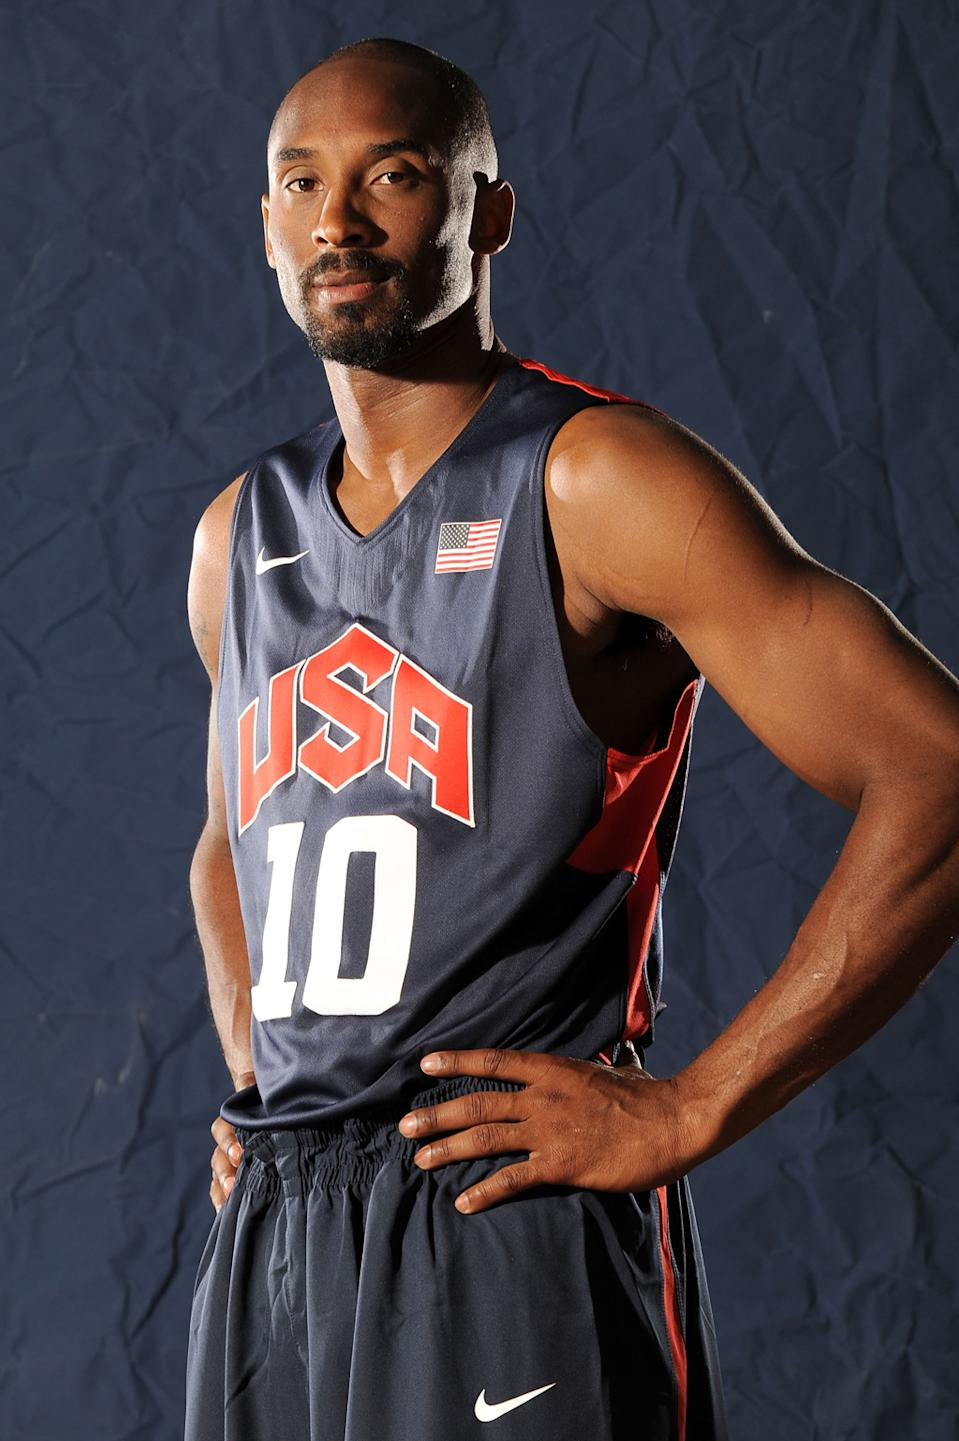 <b>Kobe Bryant</b><br> Kobe's looks make him a winner on and off the court. No doubt we'll see Team USA's biggest star flashing his confident grin atop the podium in London. (Photo by Andrew D. Bernstein/NBAE via Getty Images)